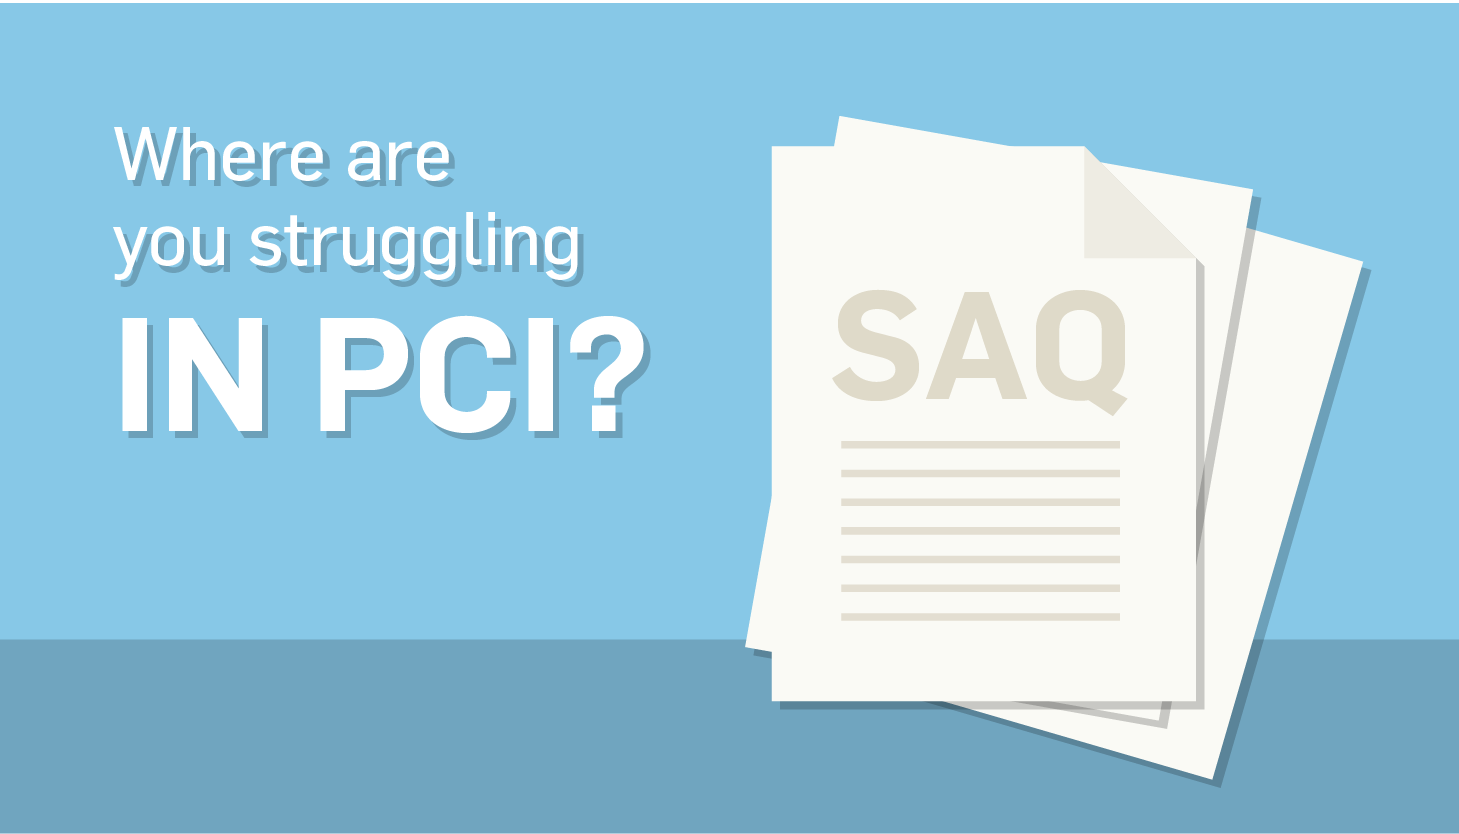 Top 10 PCI SAQ Areas Where Merchants Struggled